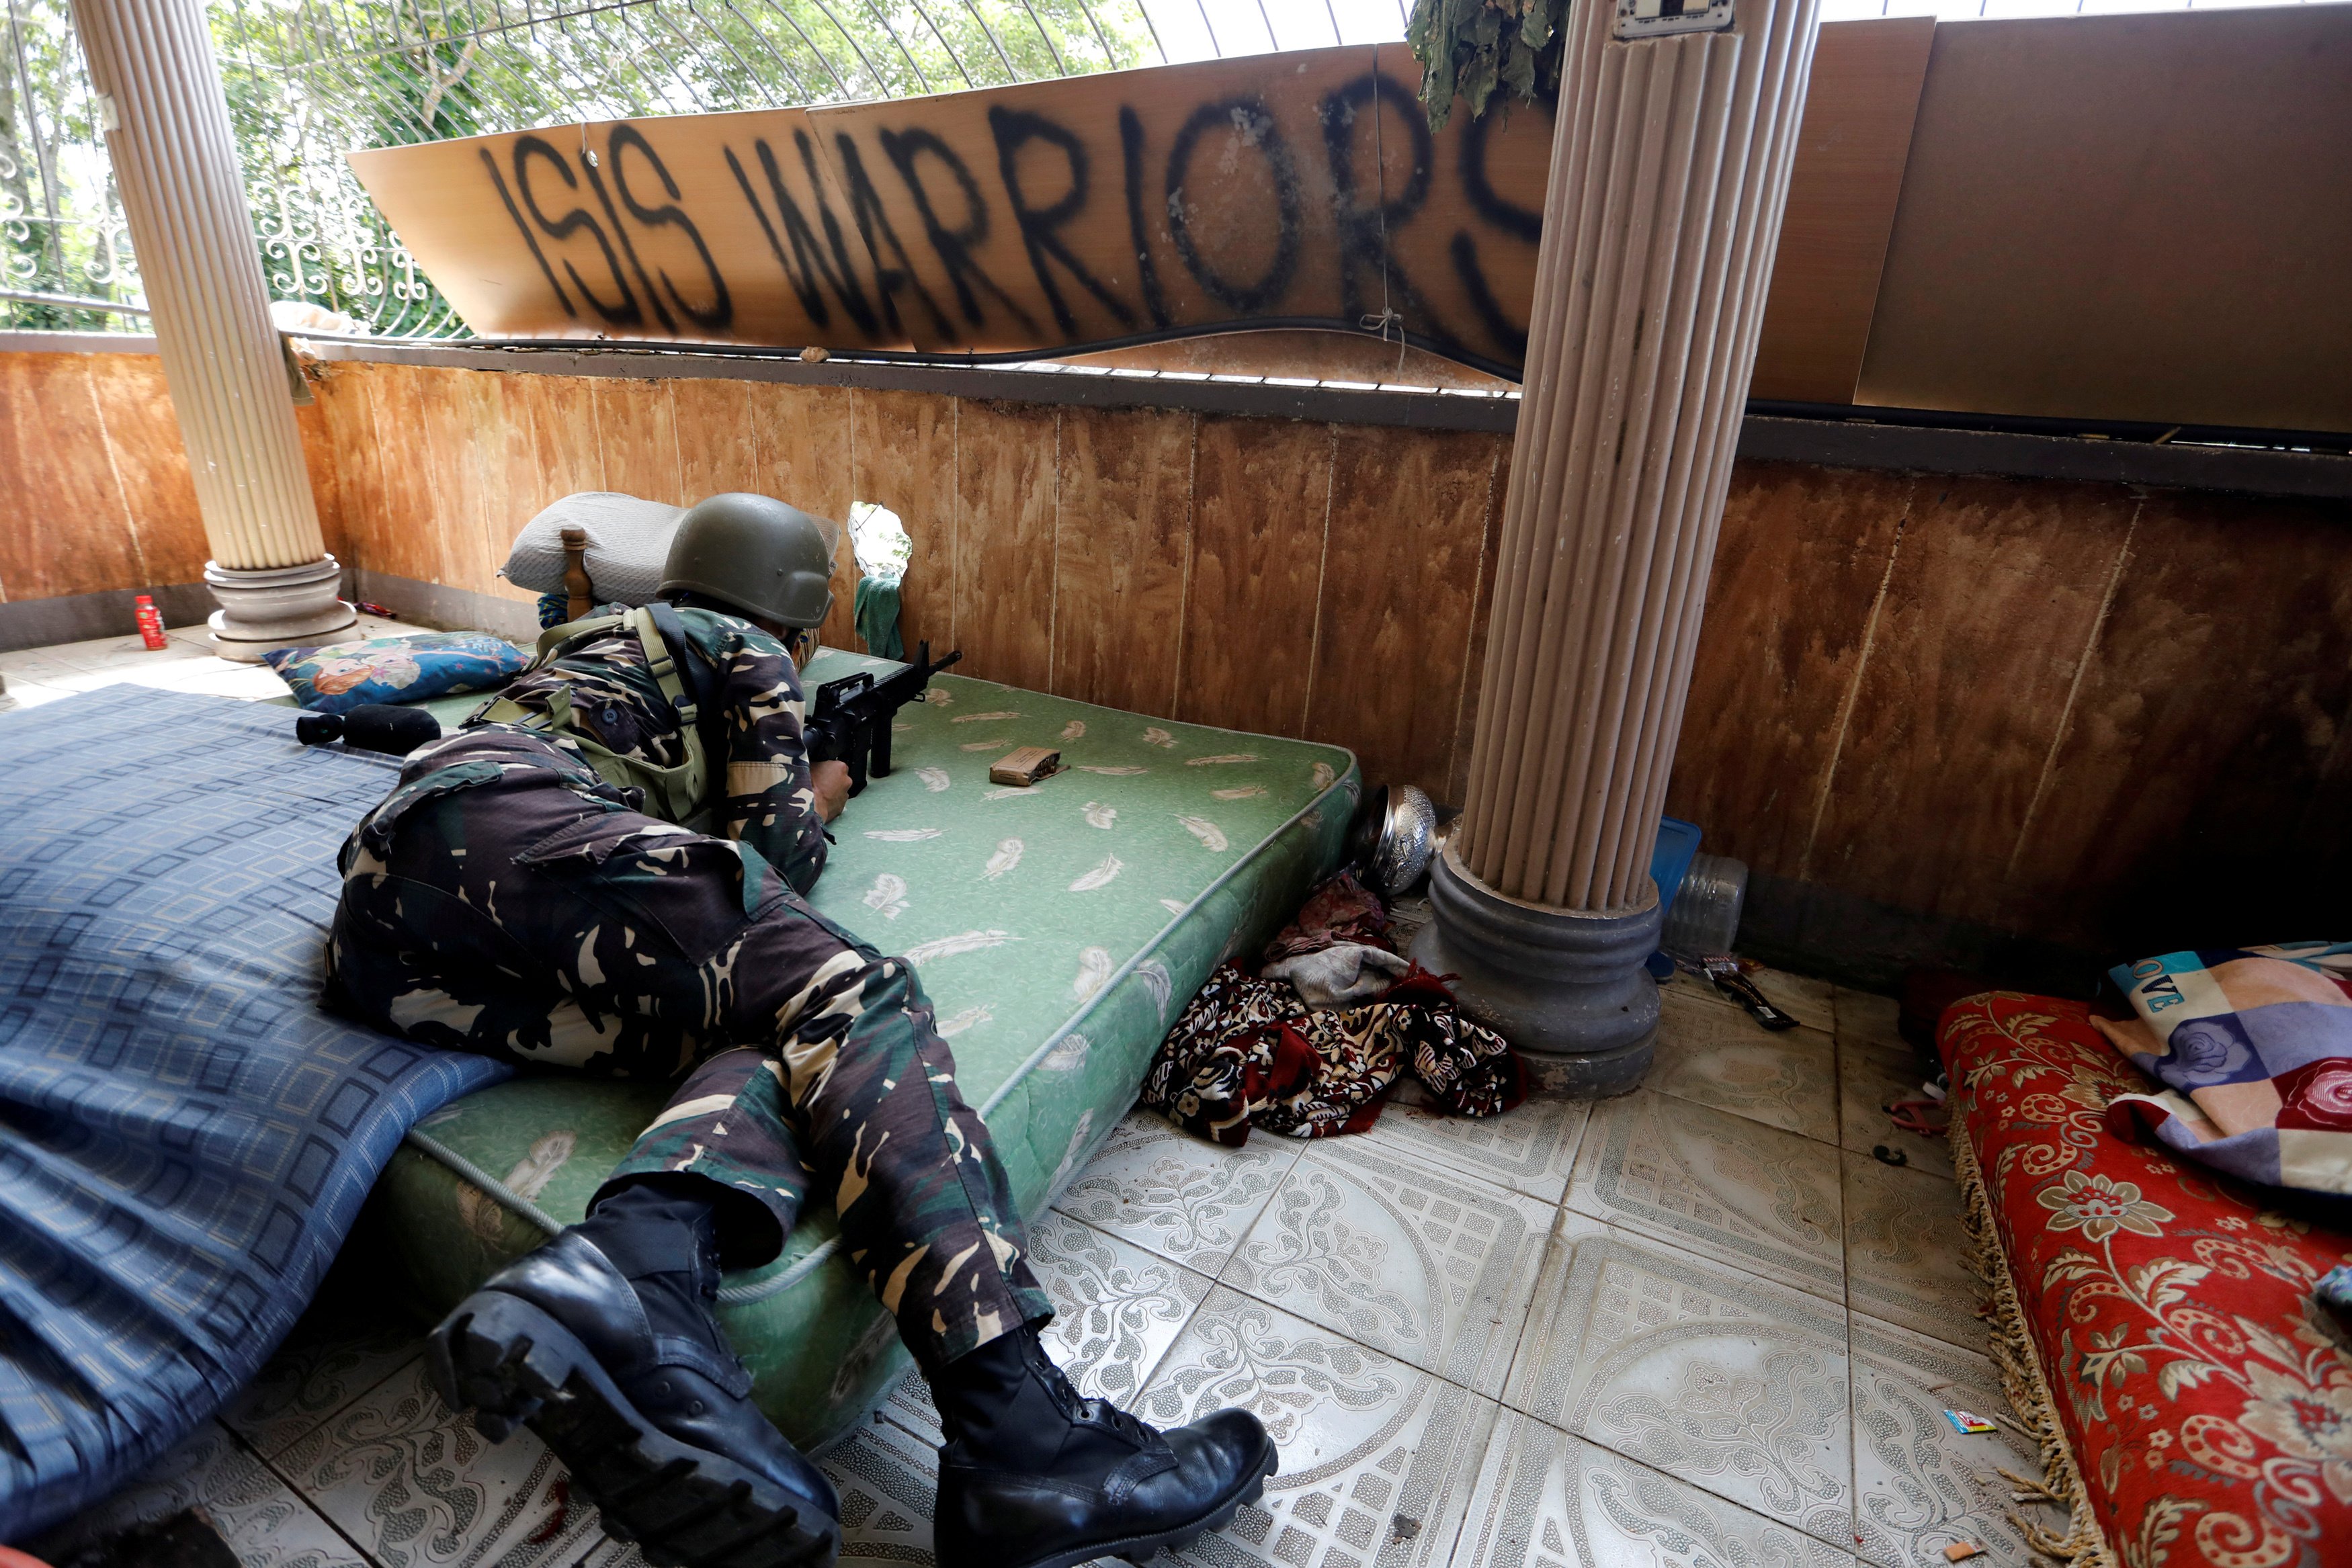 FILE PHOTO: A Filipino soldier lies on a mattress at their combat position in a house as government troops continue their assault against insurgents from the Maute group in Marawi city, Philippines July 1, 2017.